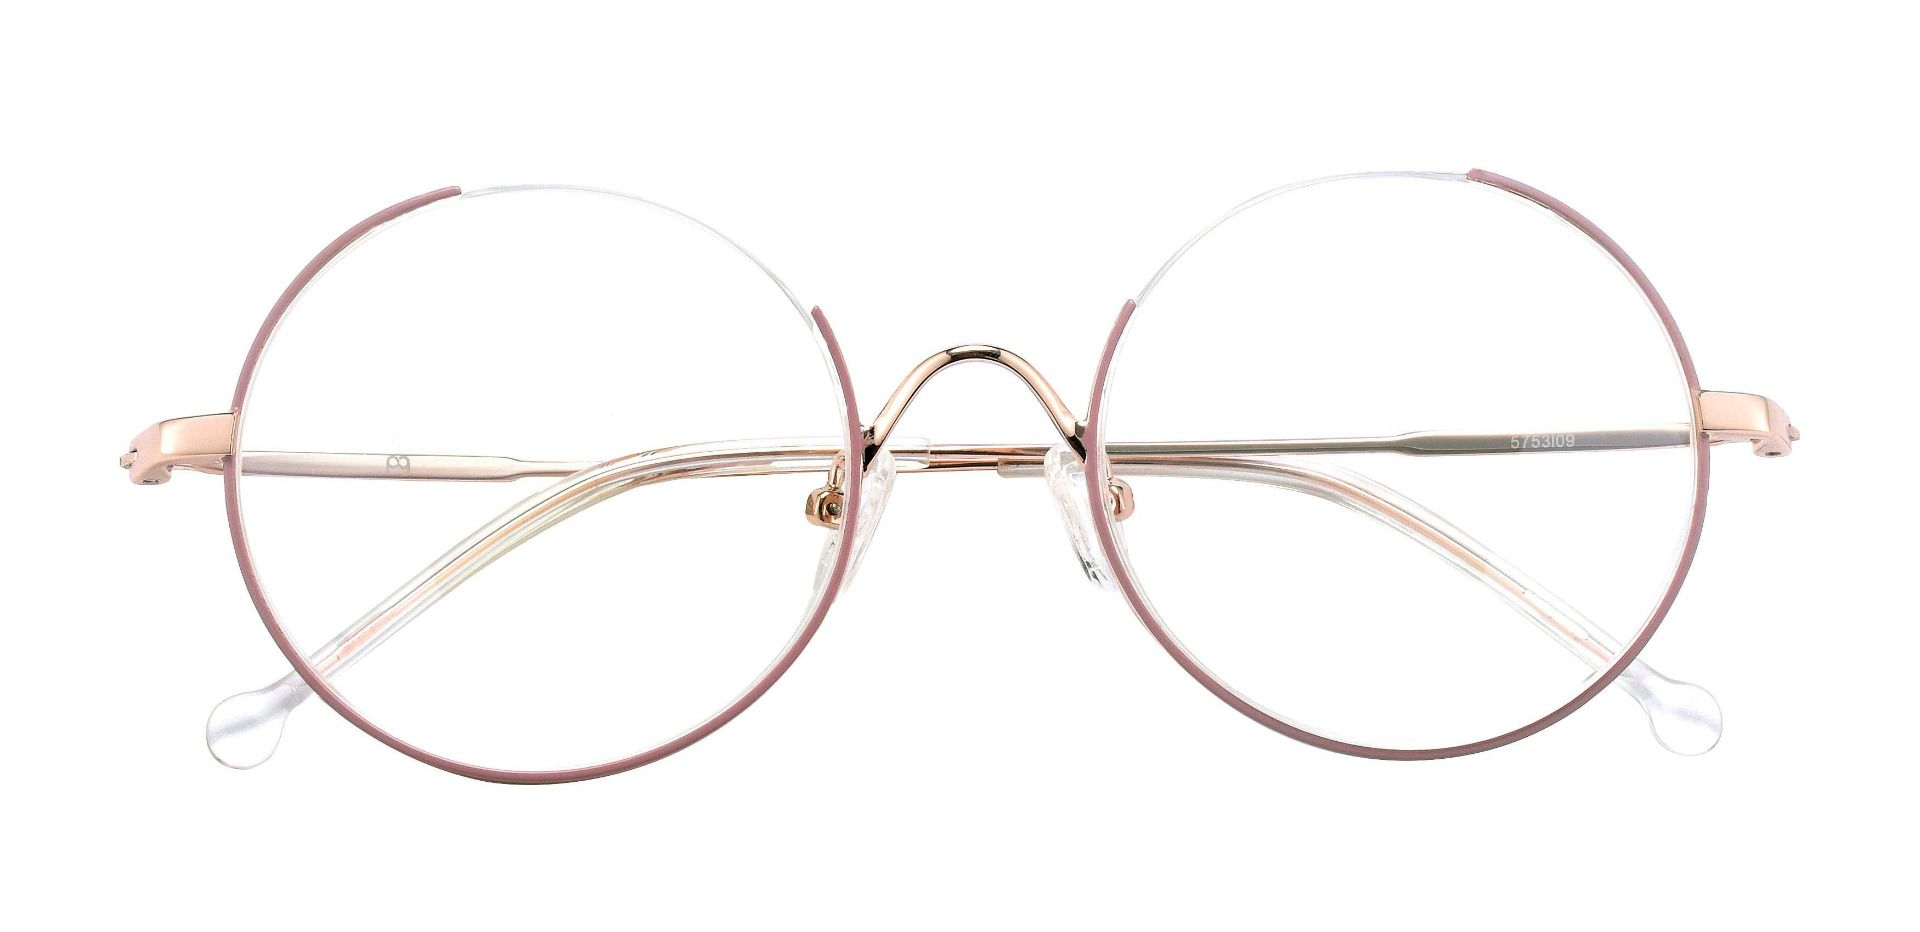 Geller Round Prescription Glasses - Pink